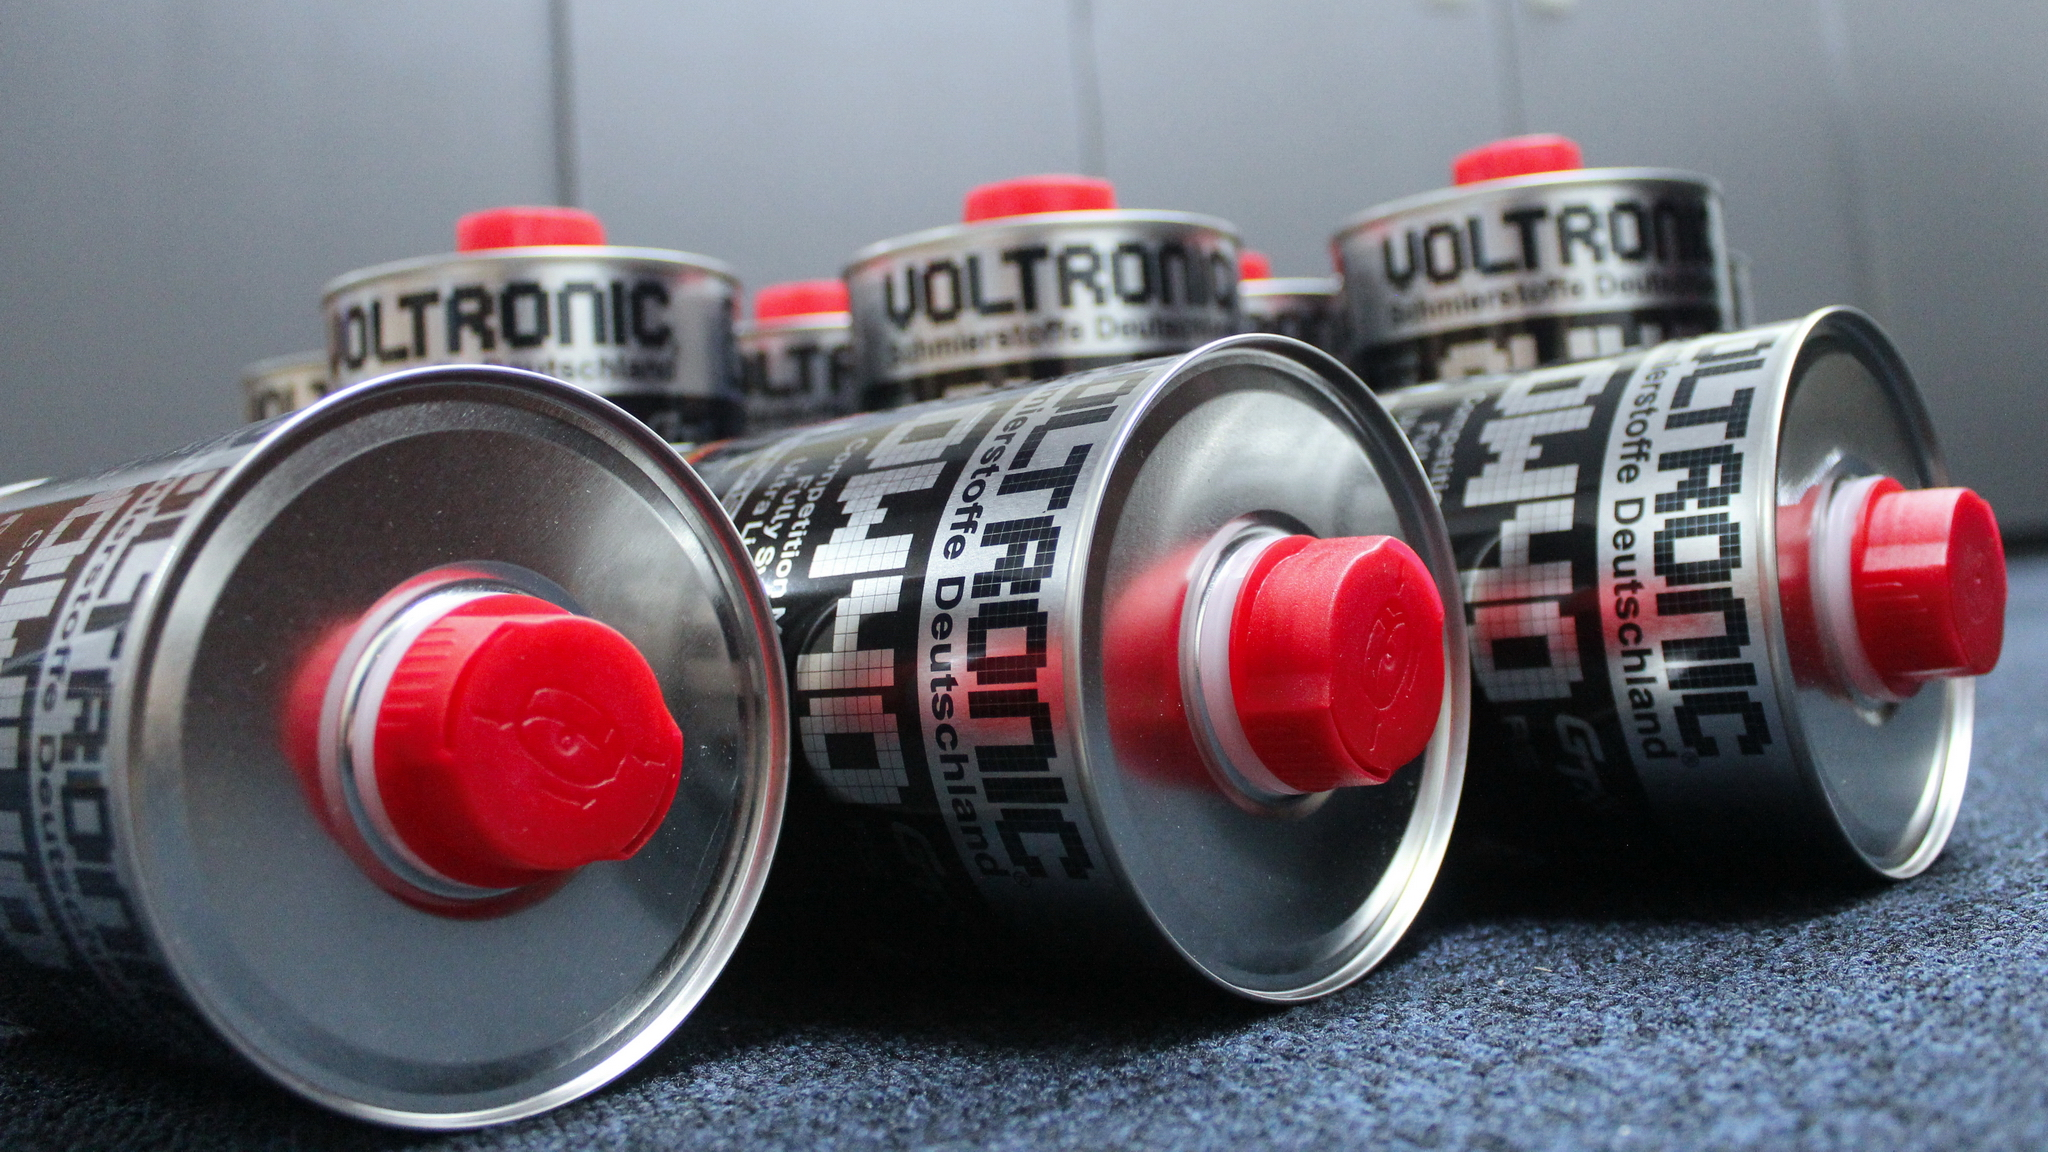 VOLTRONIC 0W40 GT-RS Motor Oil